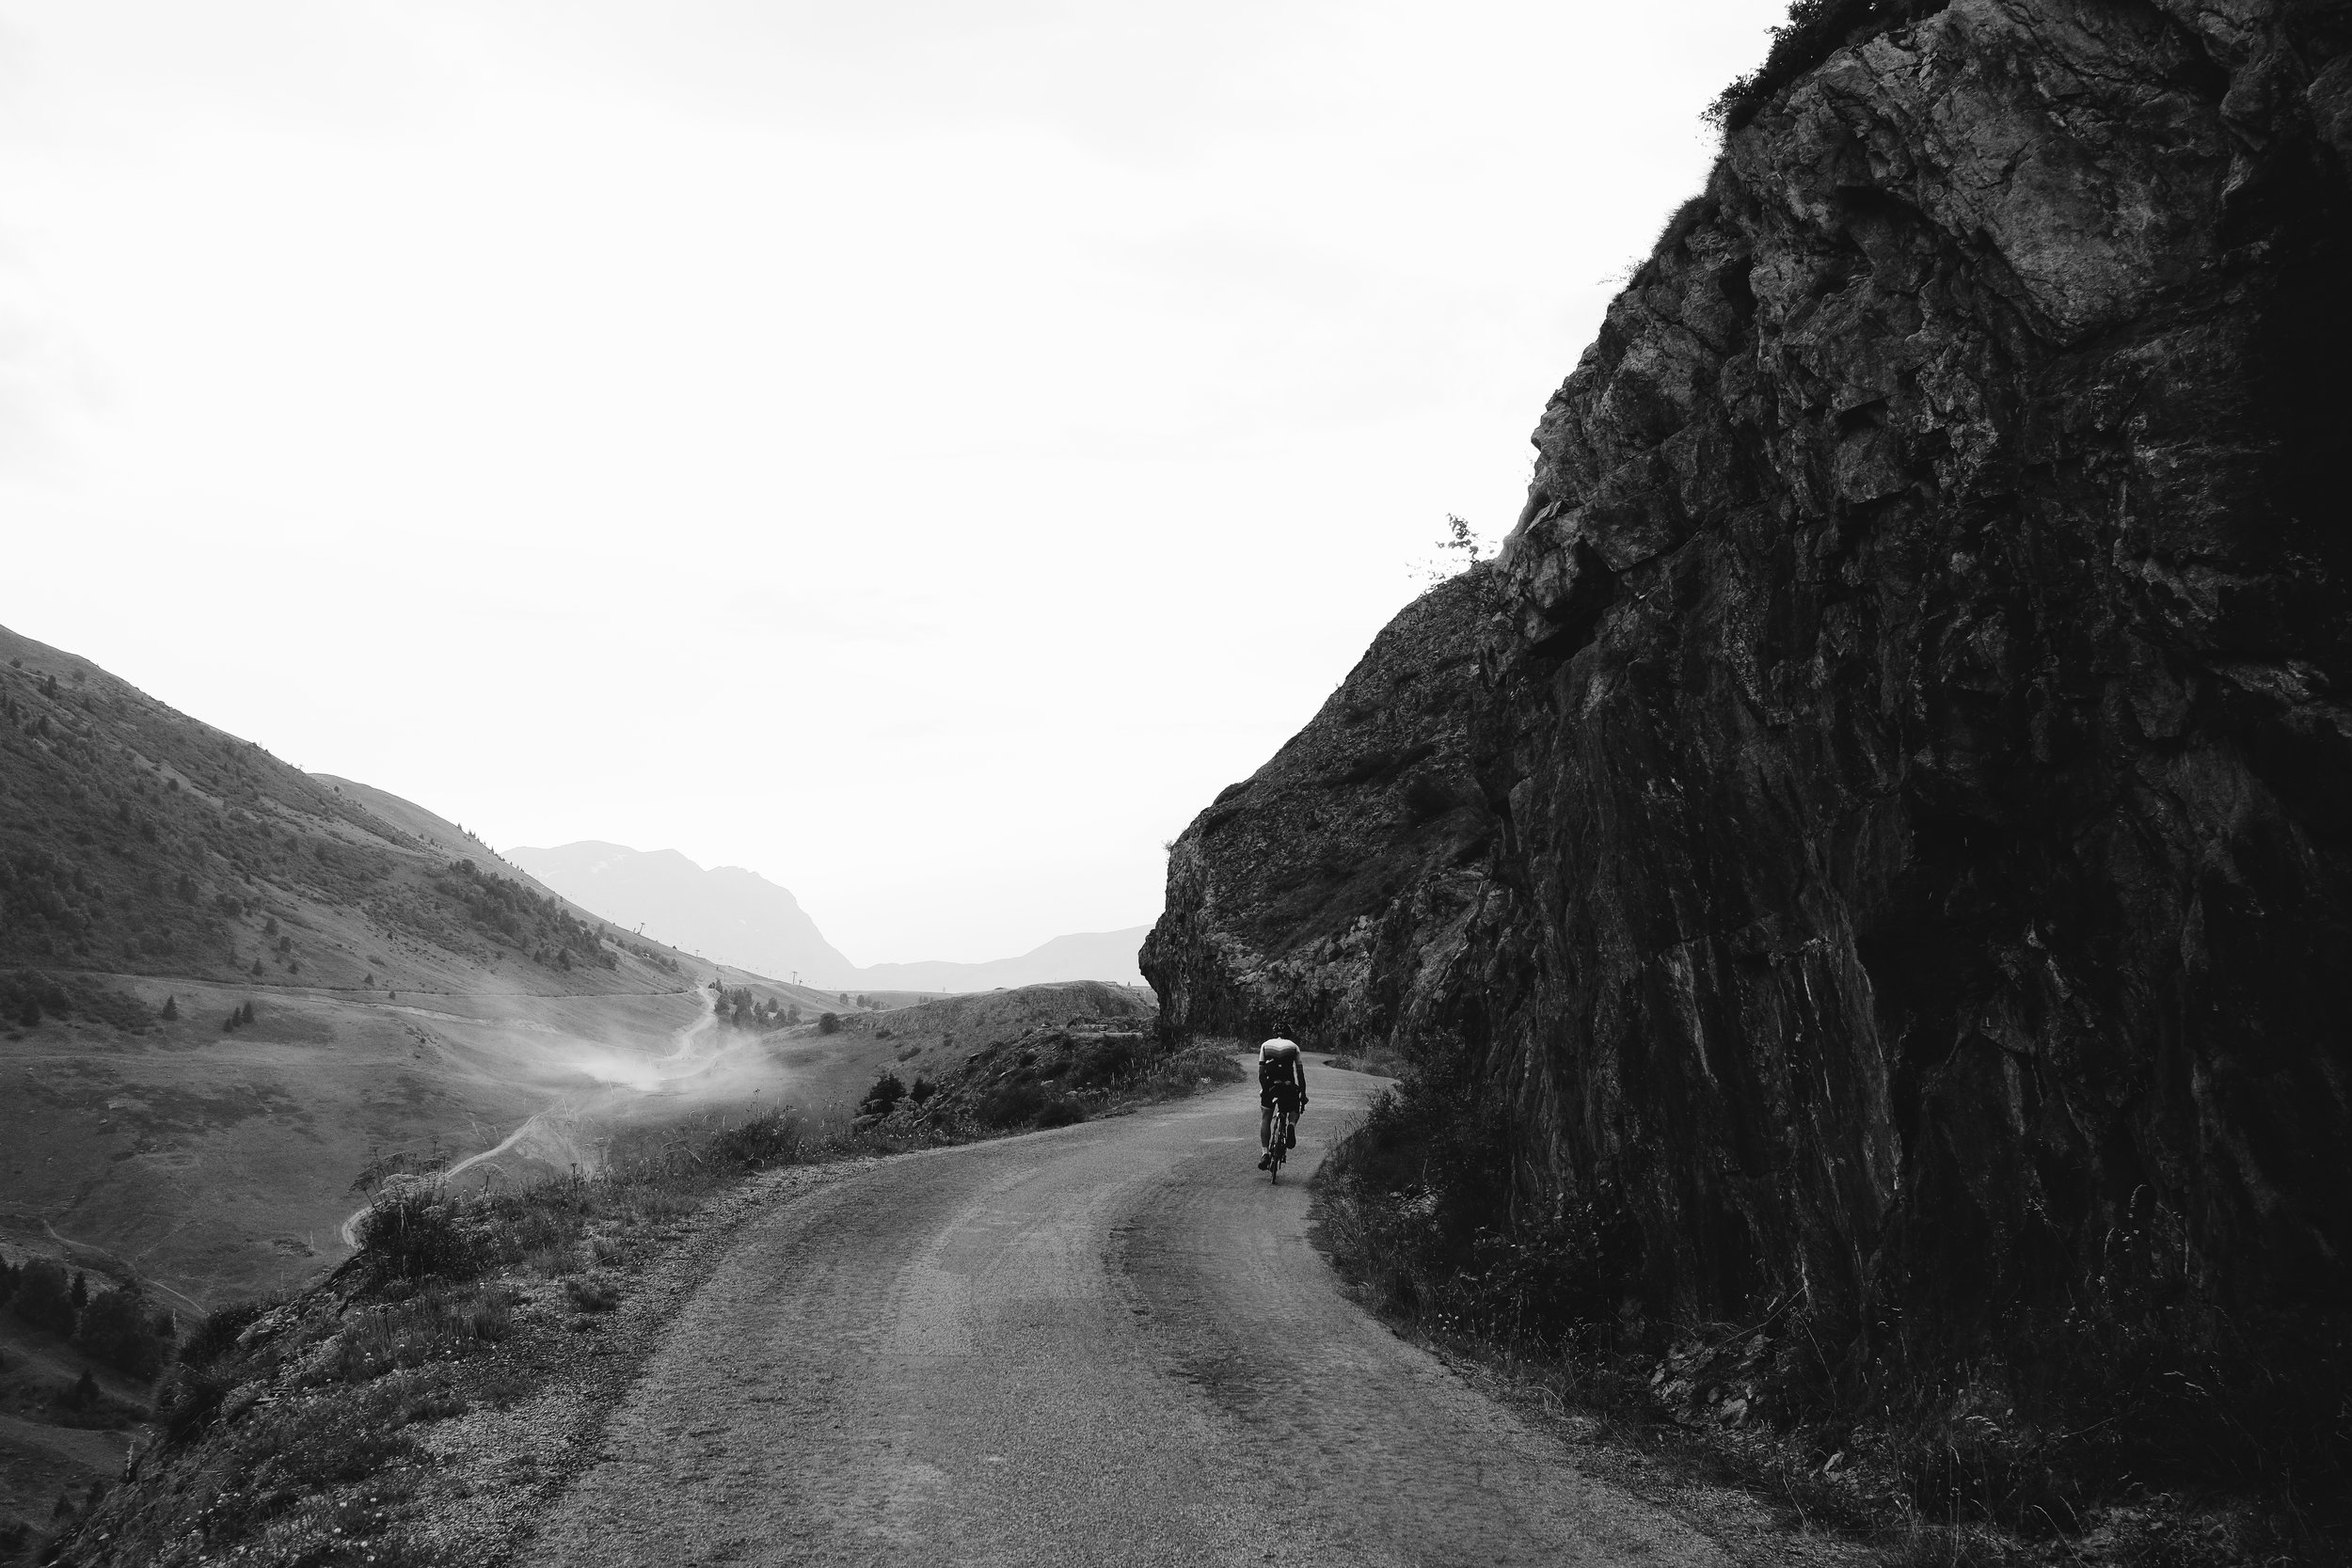 CP4 Parcours, the gravel tracks of the backside of Alpe d'Huez. Photo: Angus Sung©